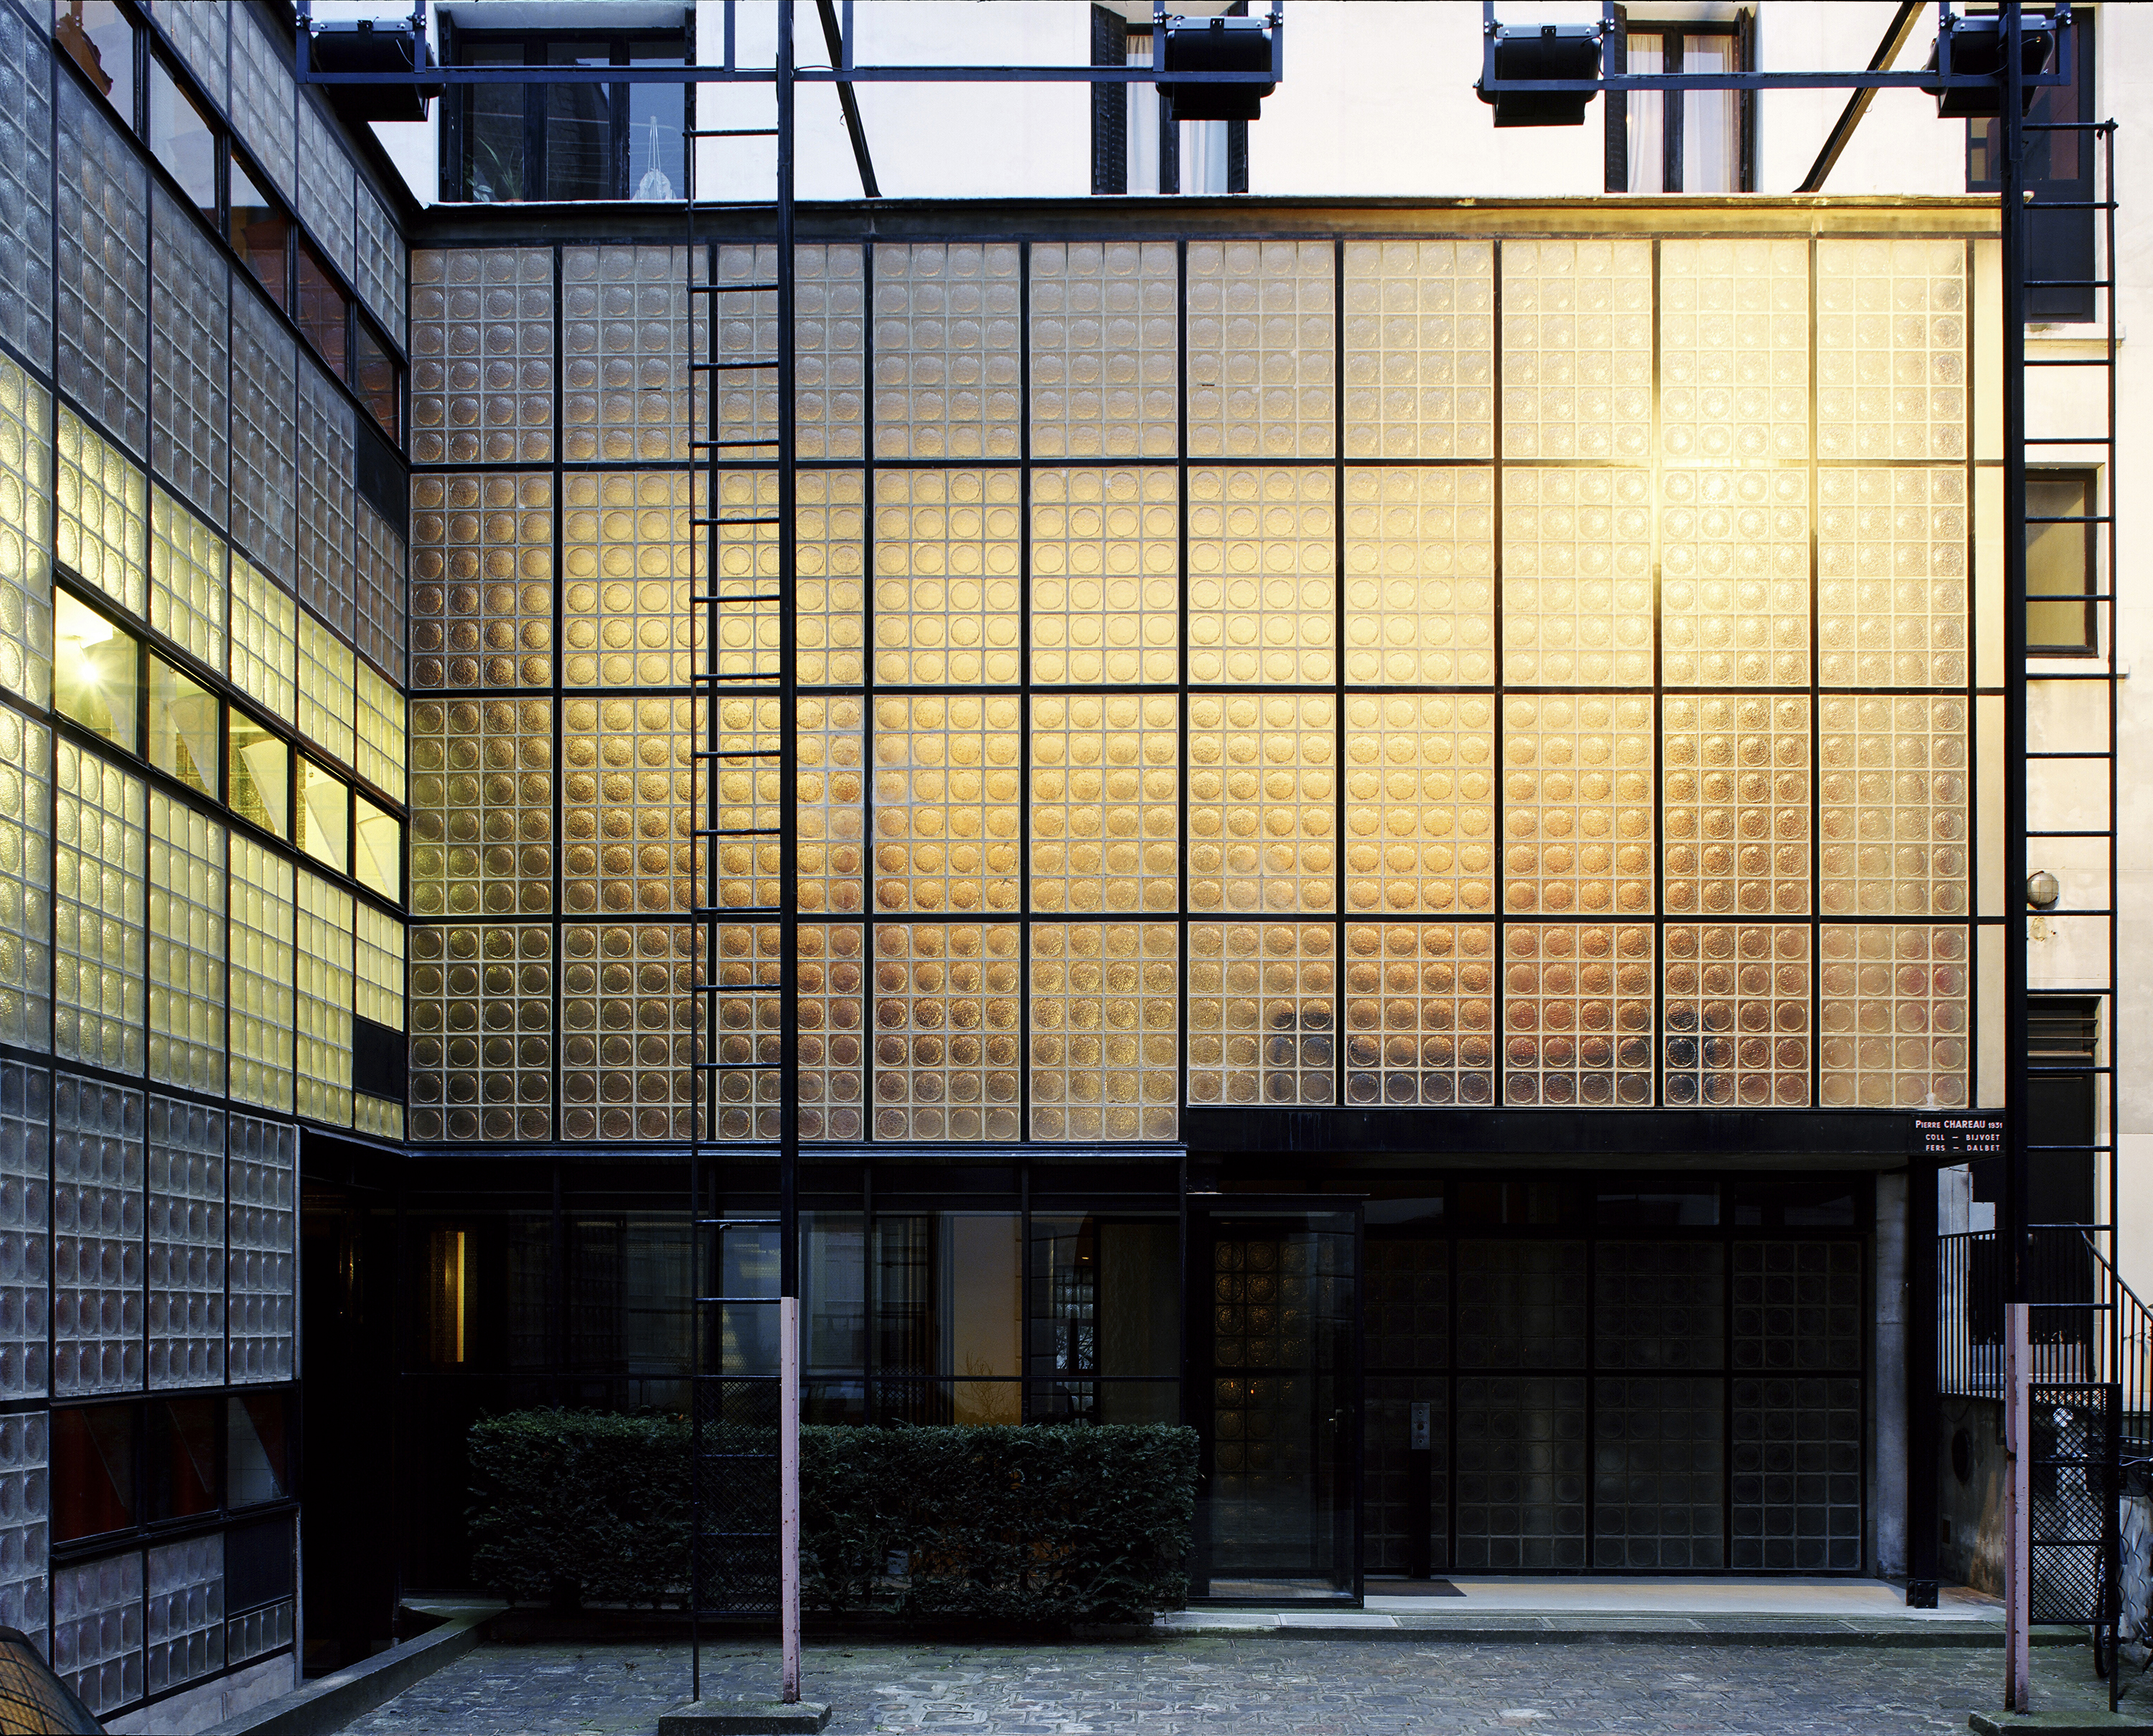 Maison De Verre The Other Glass House Curbed